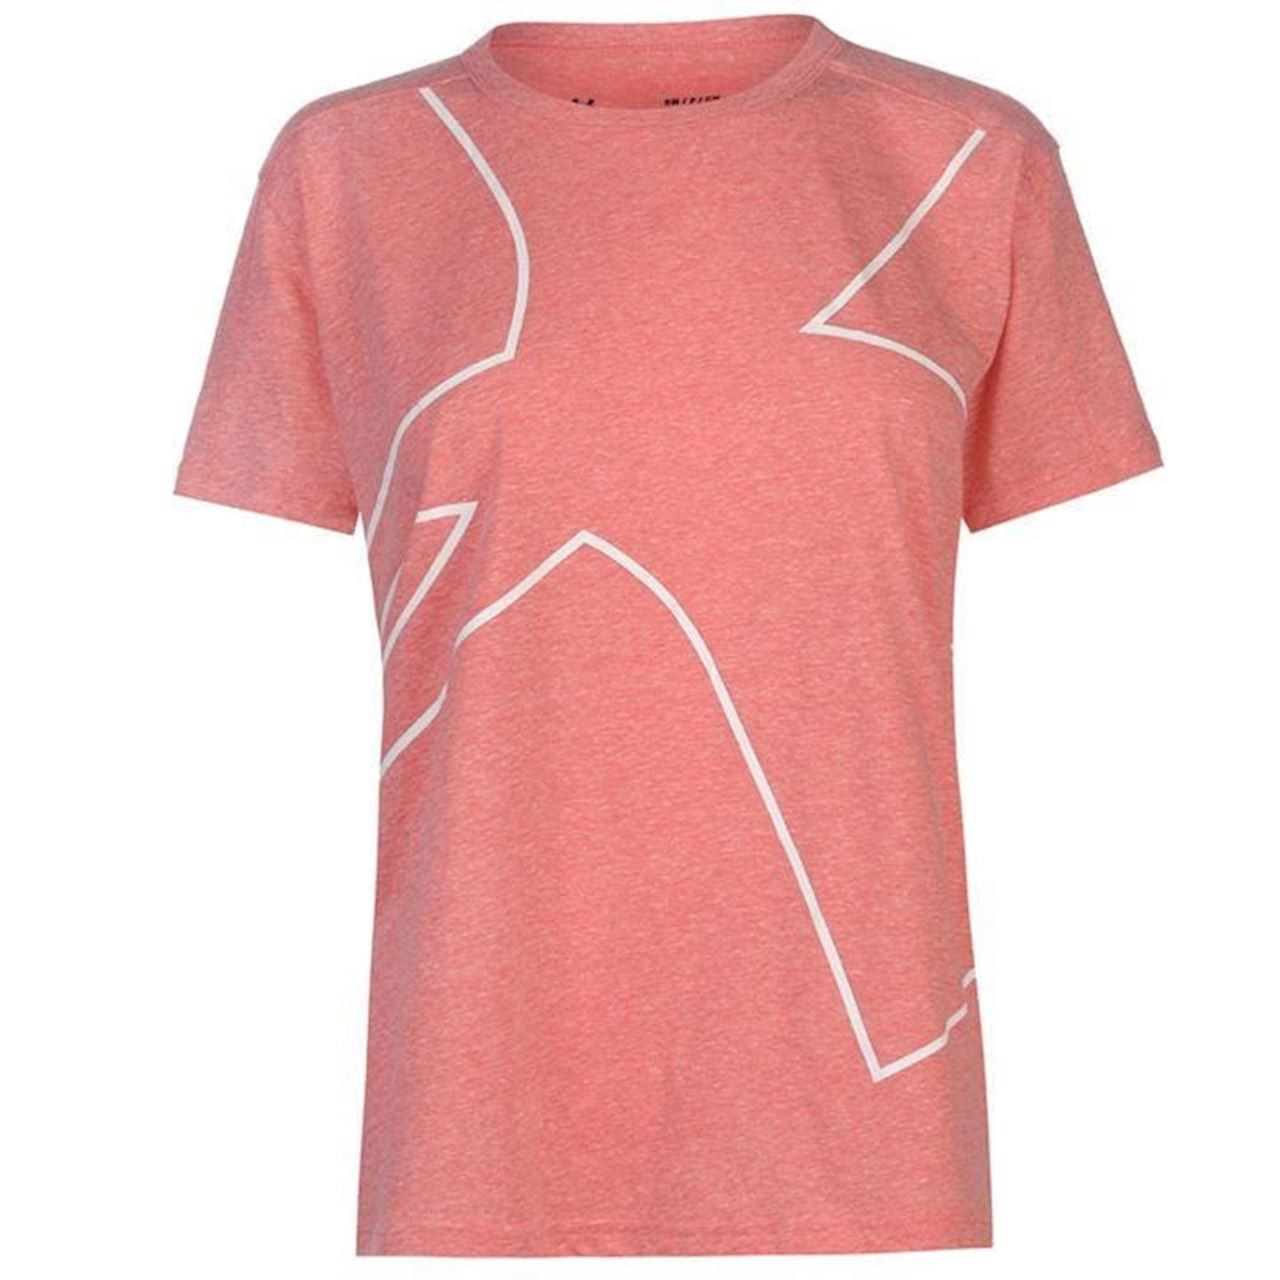 Under Armour Triblend Graphic Womens T-Shirt Pink